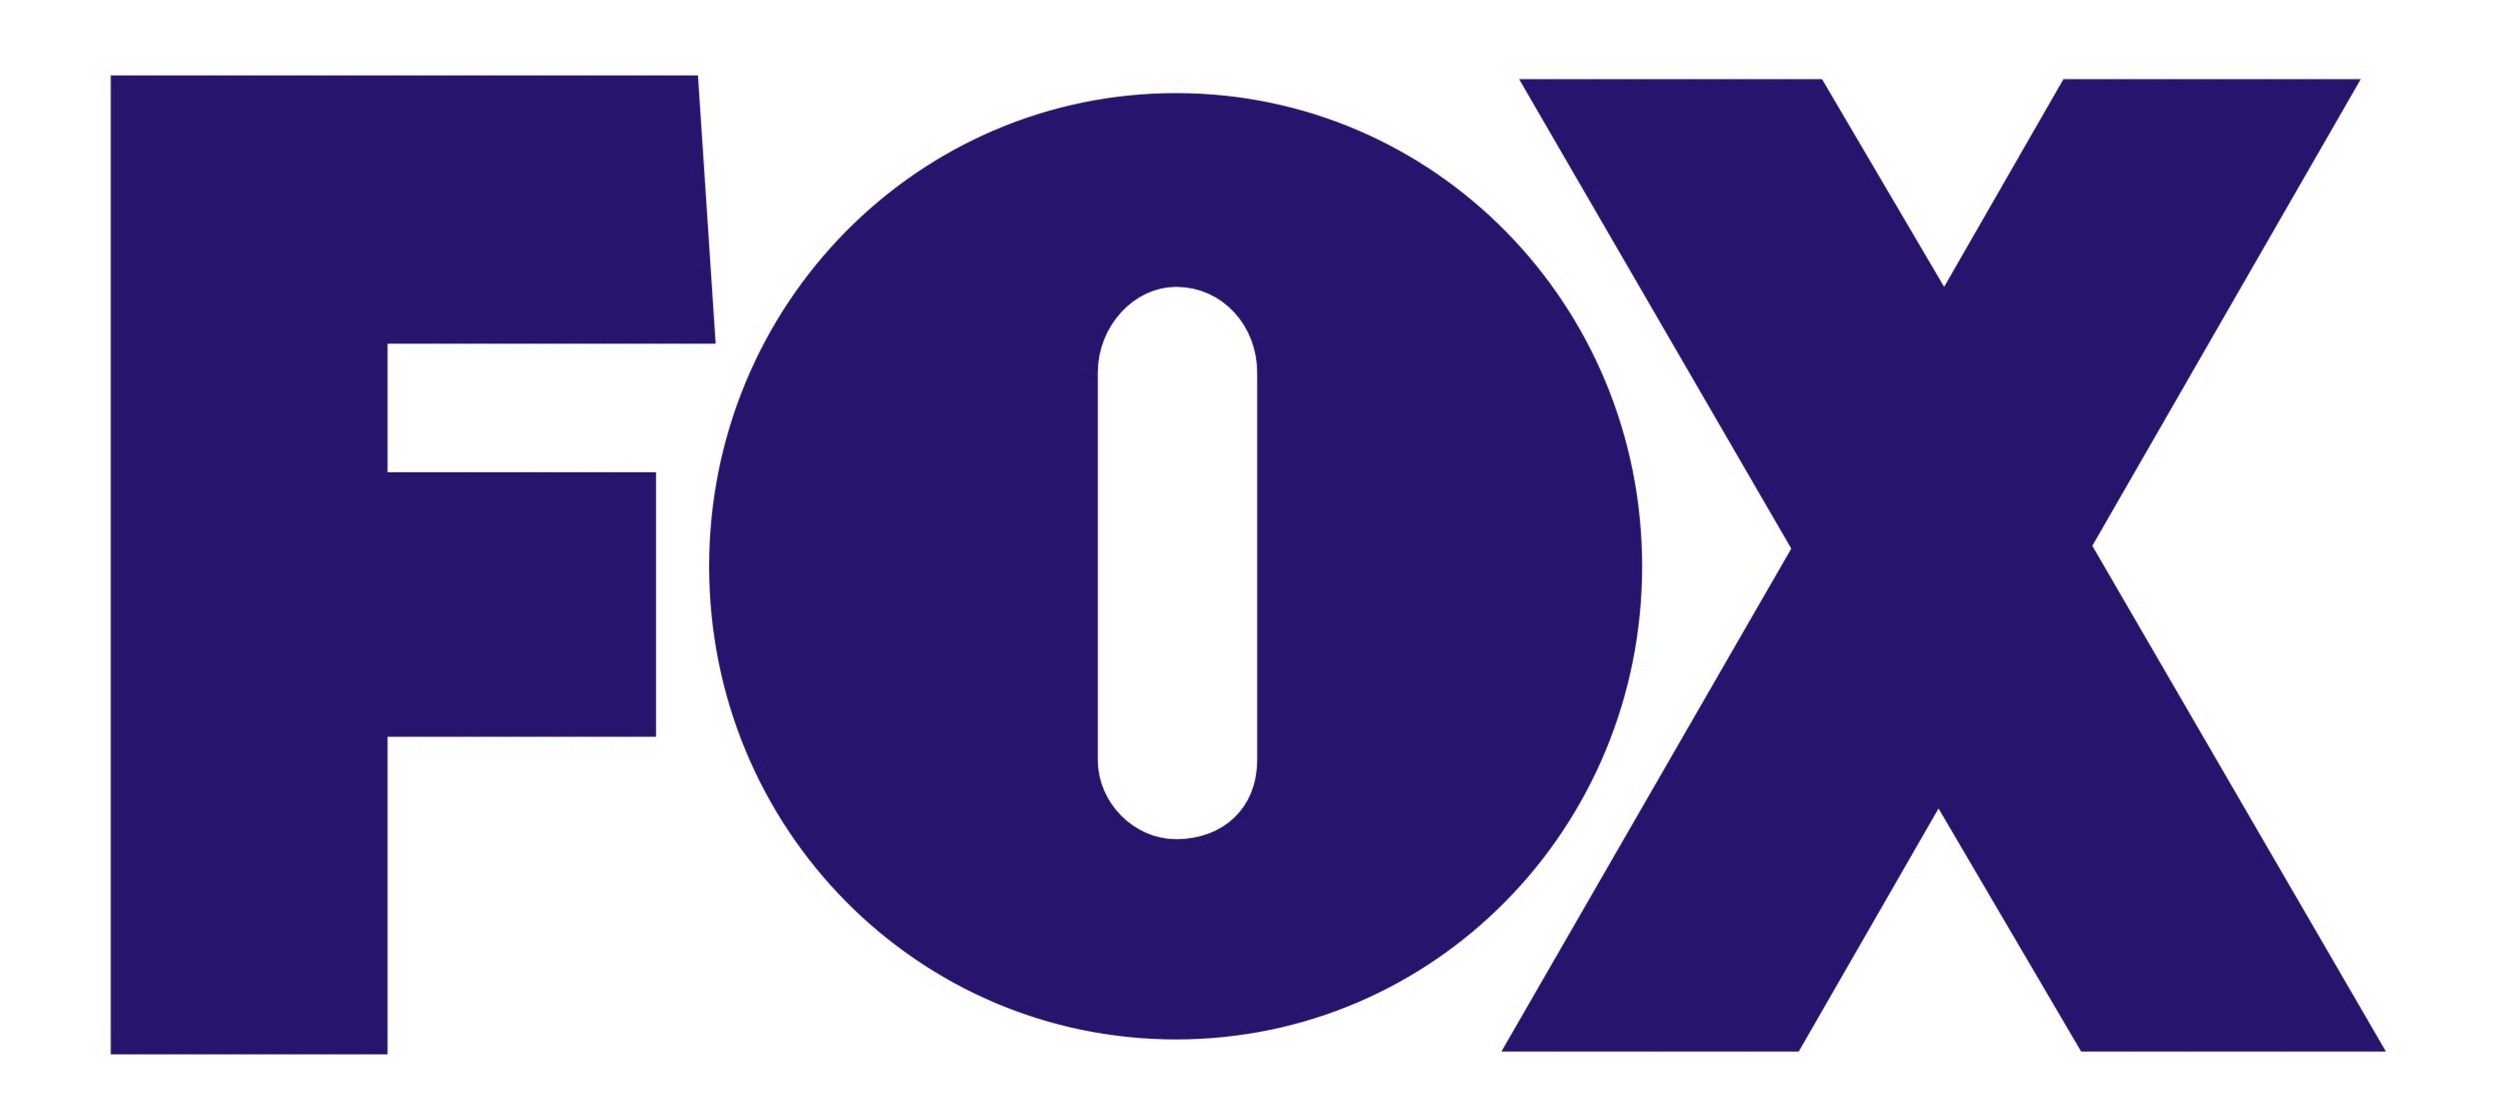 Fox Tv Logo Eps Pdf Fox Tv Fox Network Logos